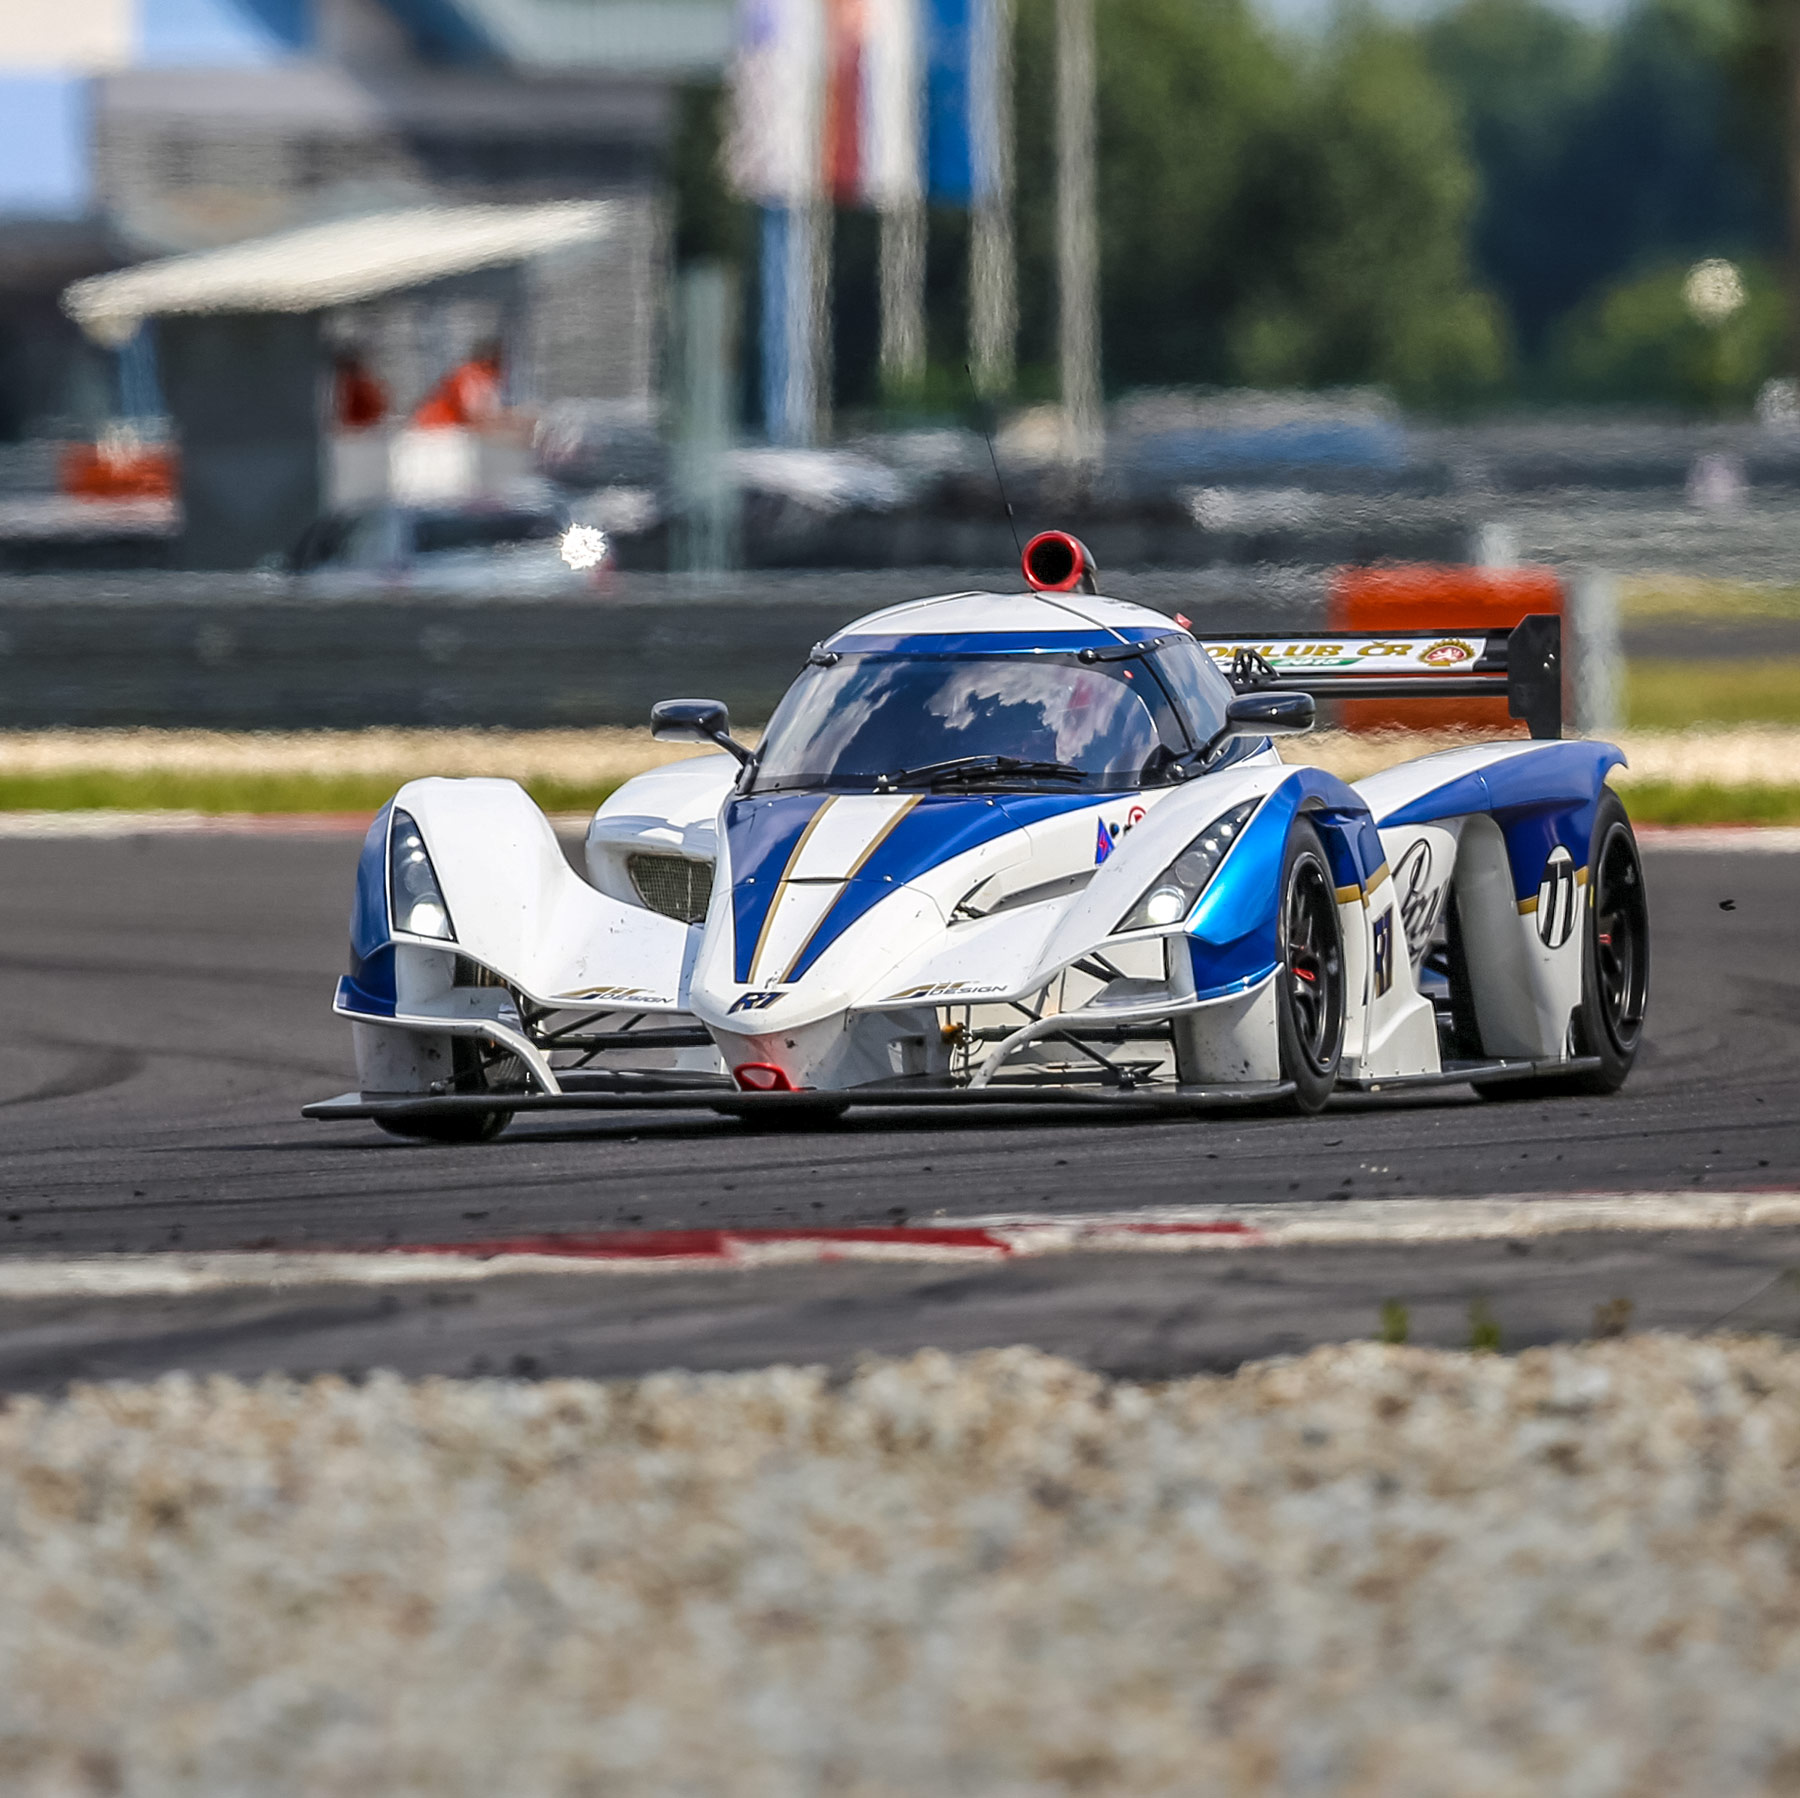 Praga reaches the 6th place in sprint race at Slovakiaring and 3rd place in endurance